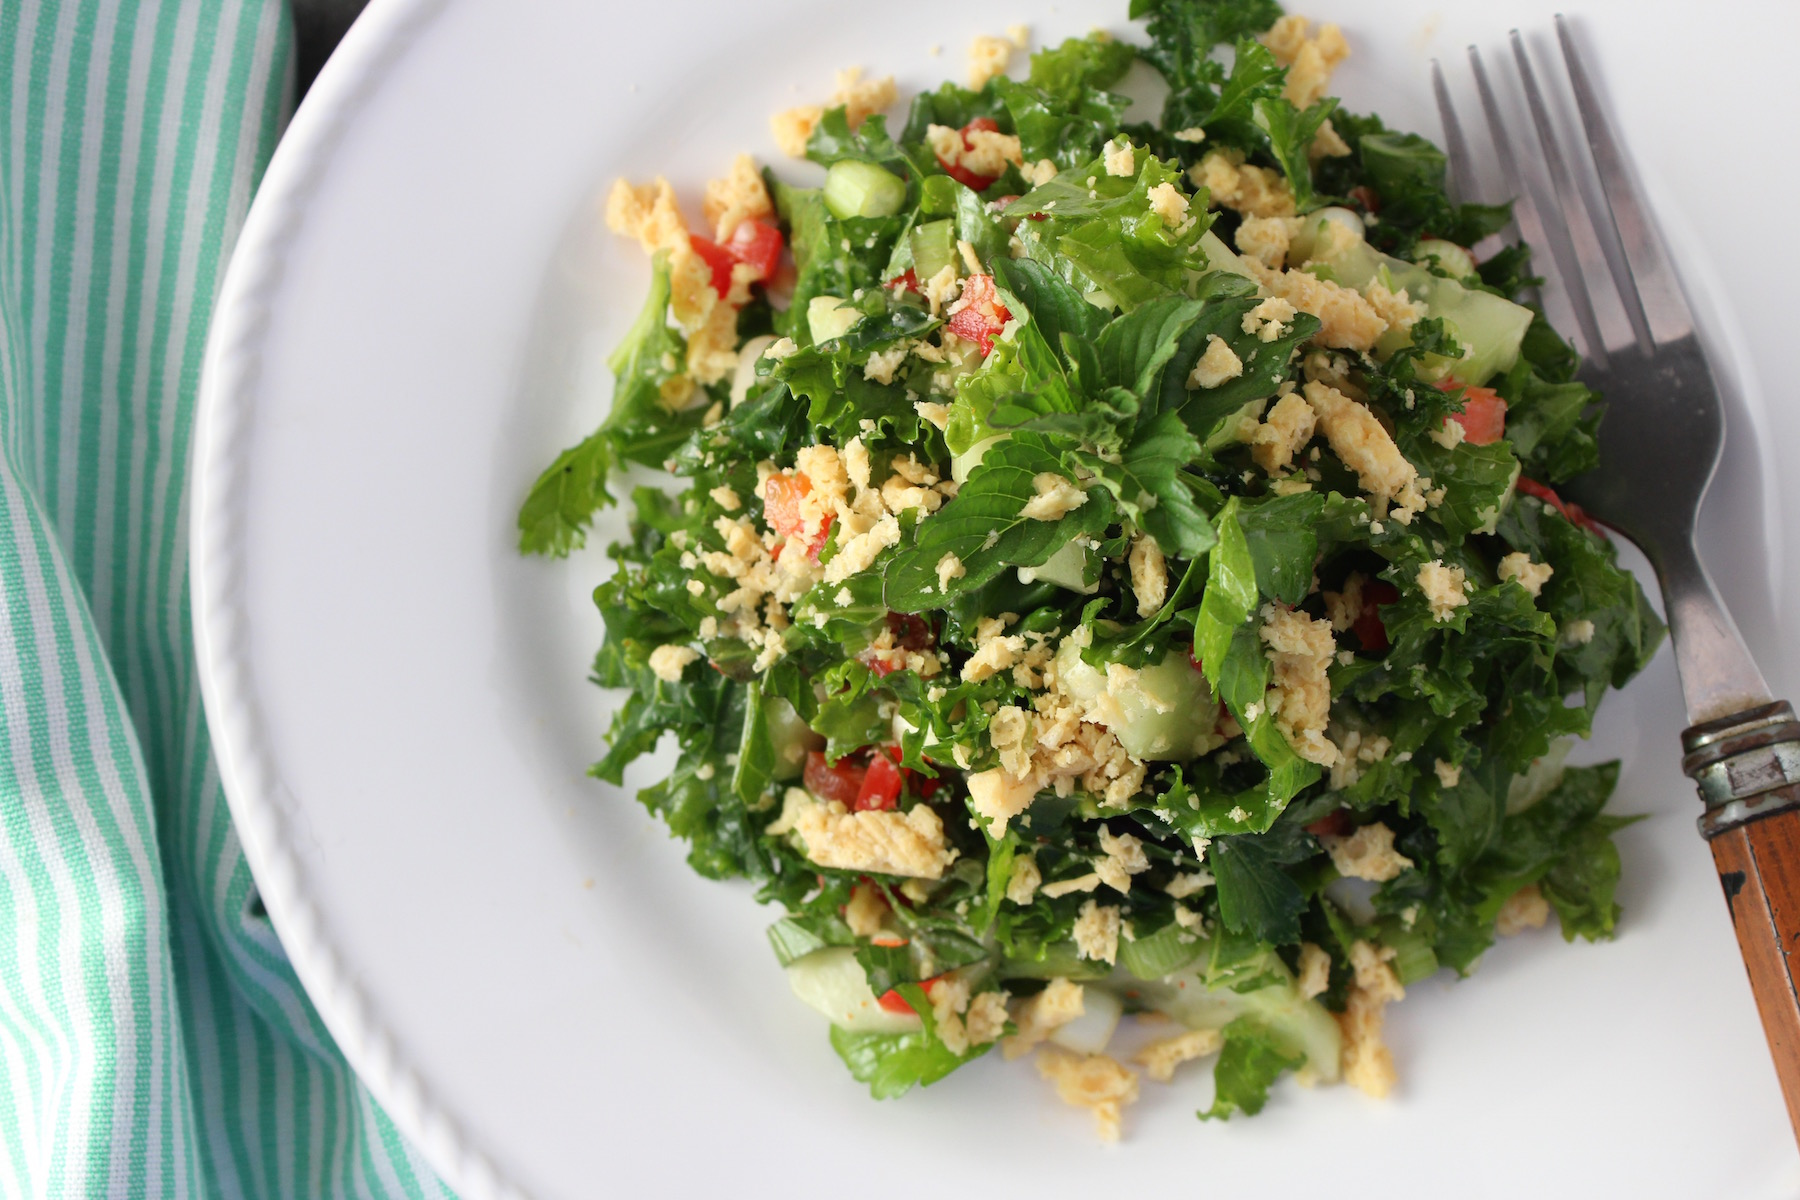 Kale Salad with Sweet Chili Dressing